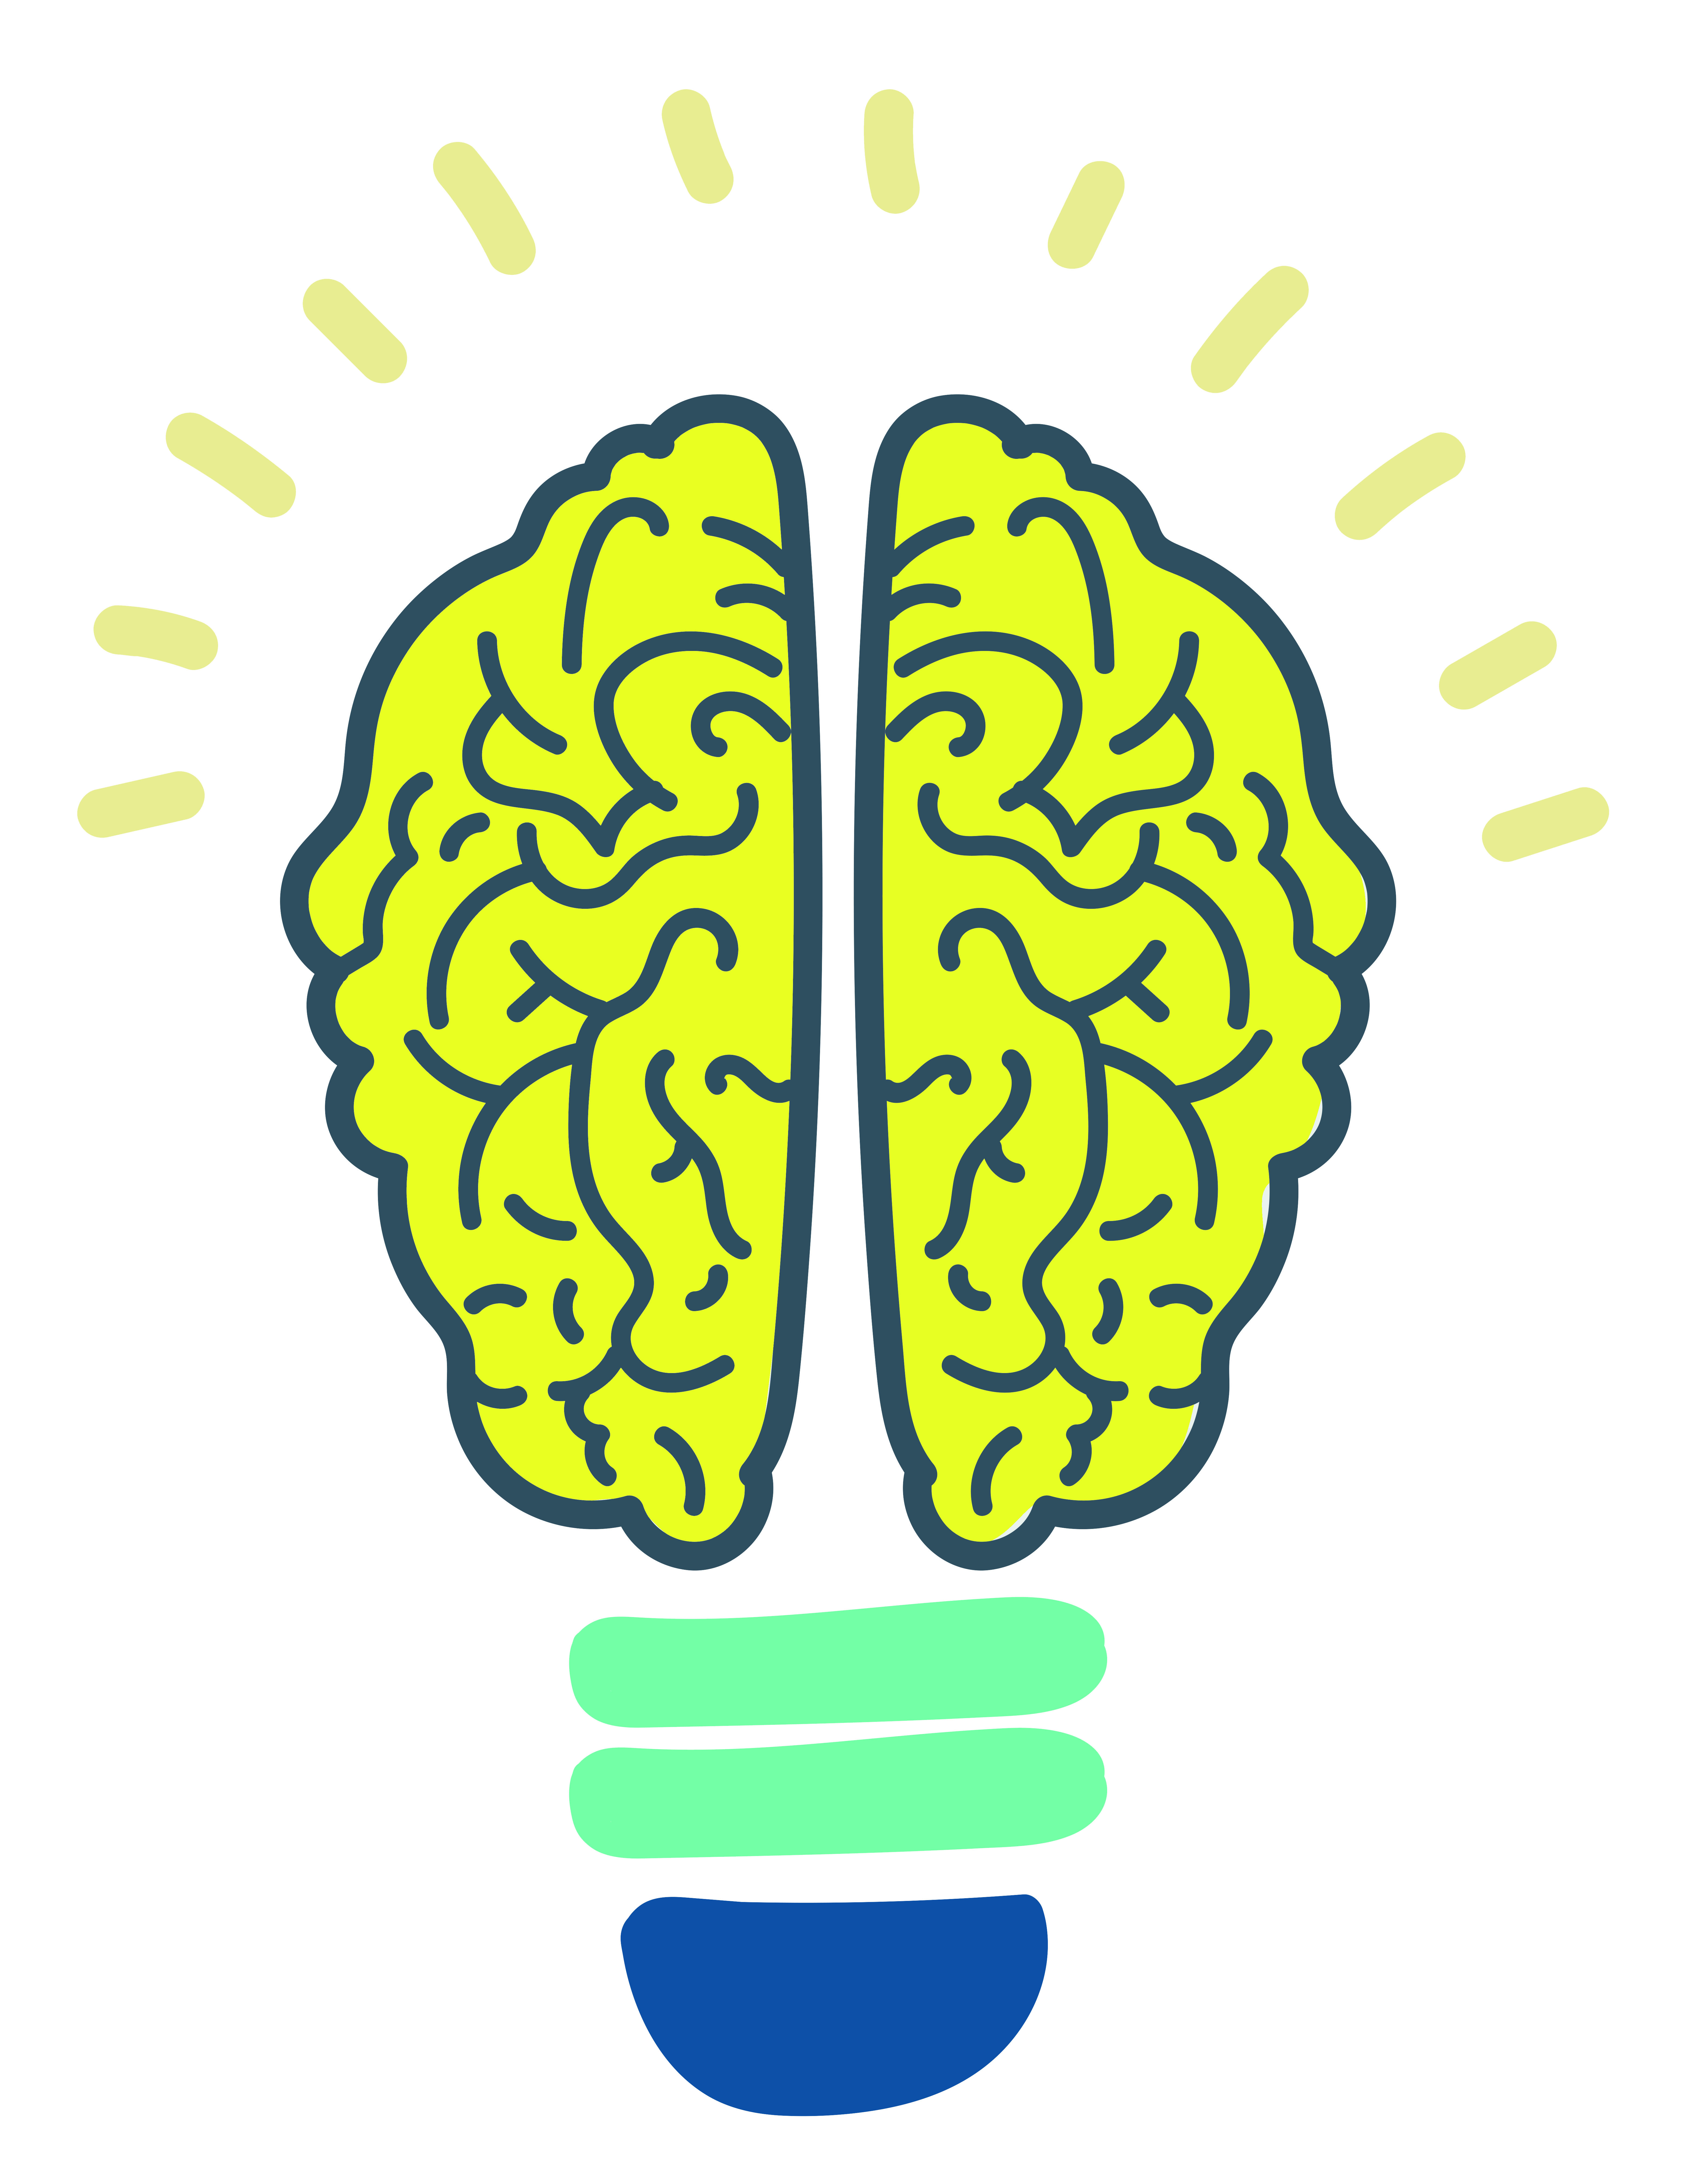 Brain learn clipart clip art royalty free library The Power and Pitfalls of Brain-Based Learning Programs | Psychology ... clip art royalty free library